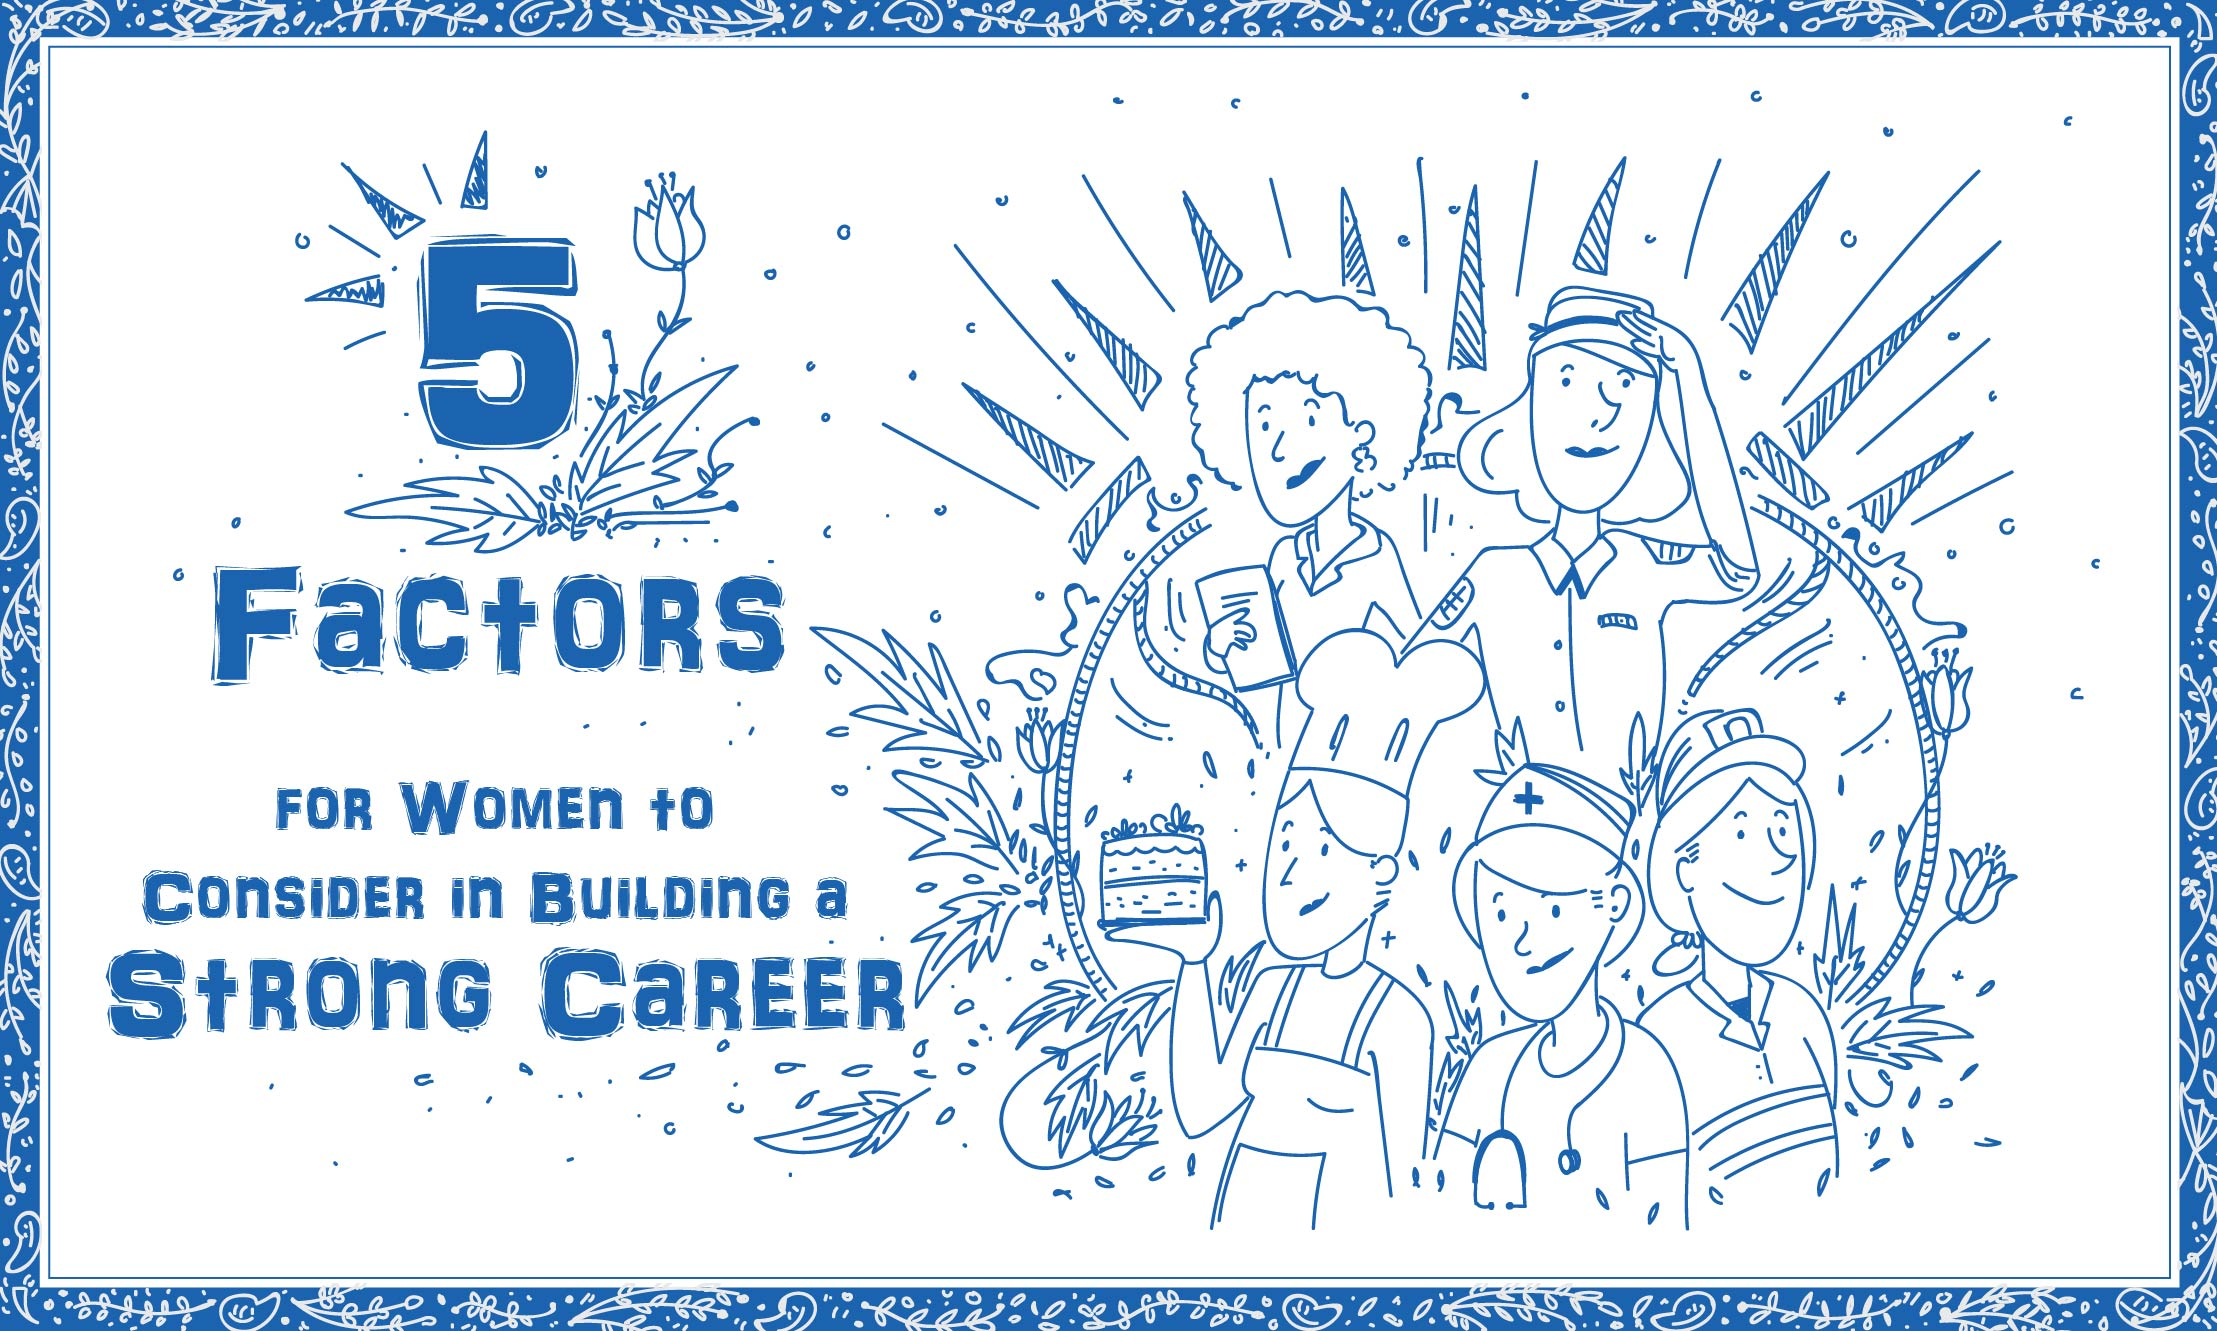 Are you in the right workplace? 5 factors for women to consider in building a strong career